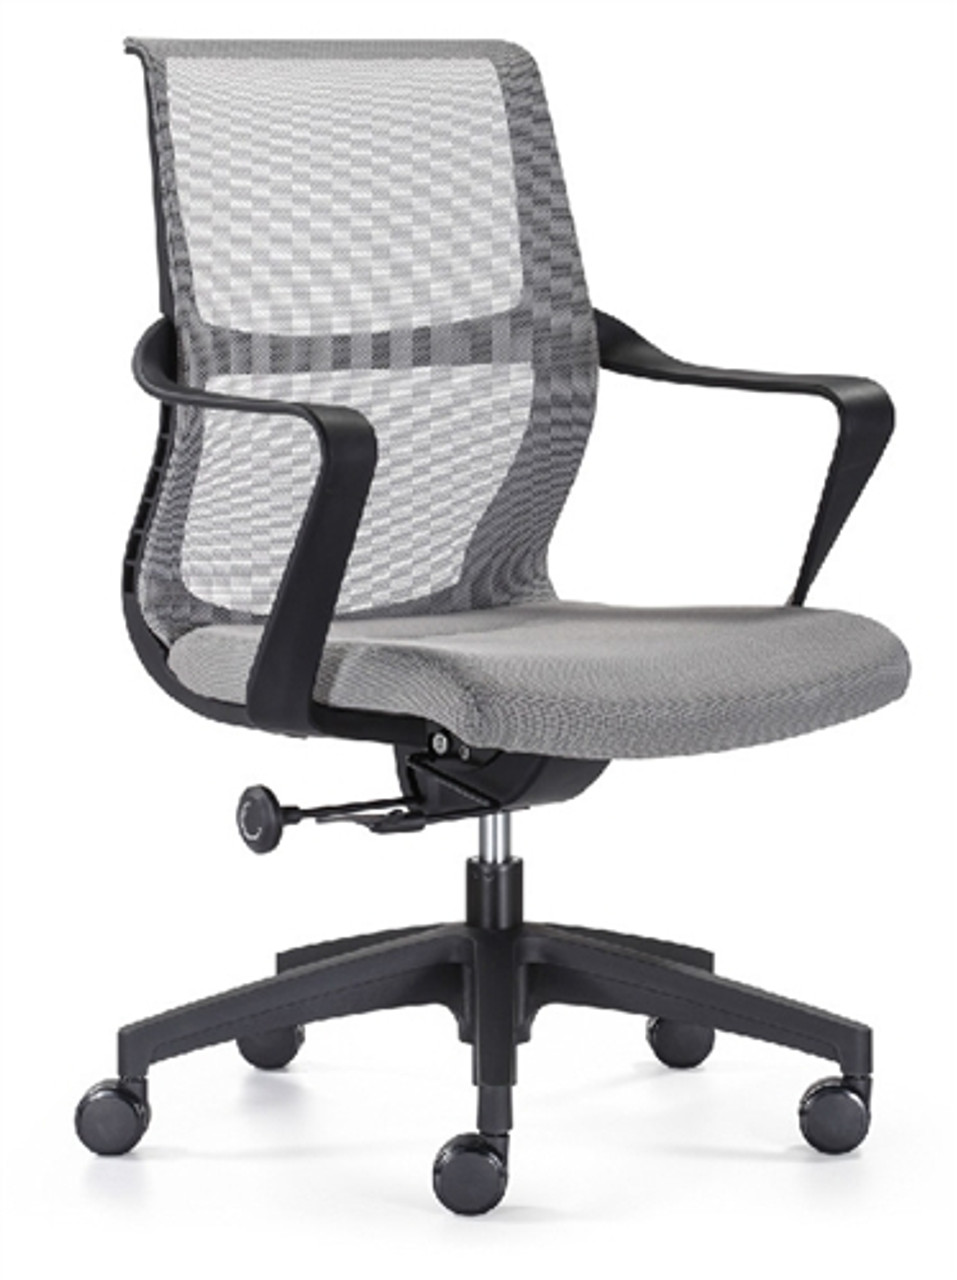 Woodstock Ravi Gray Mesh Conference Chair